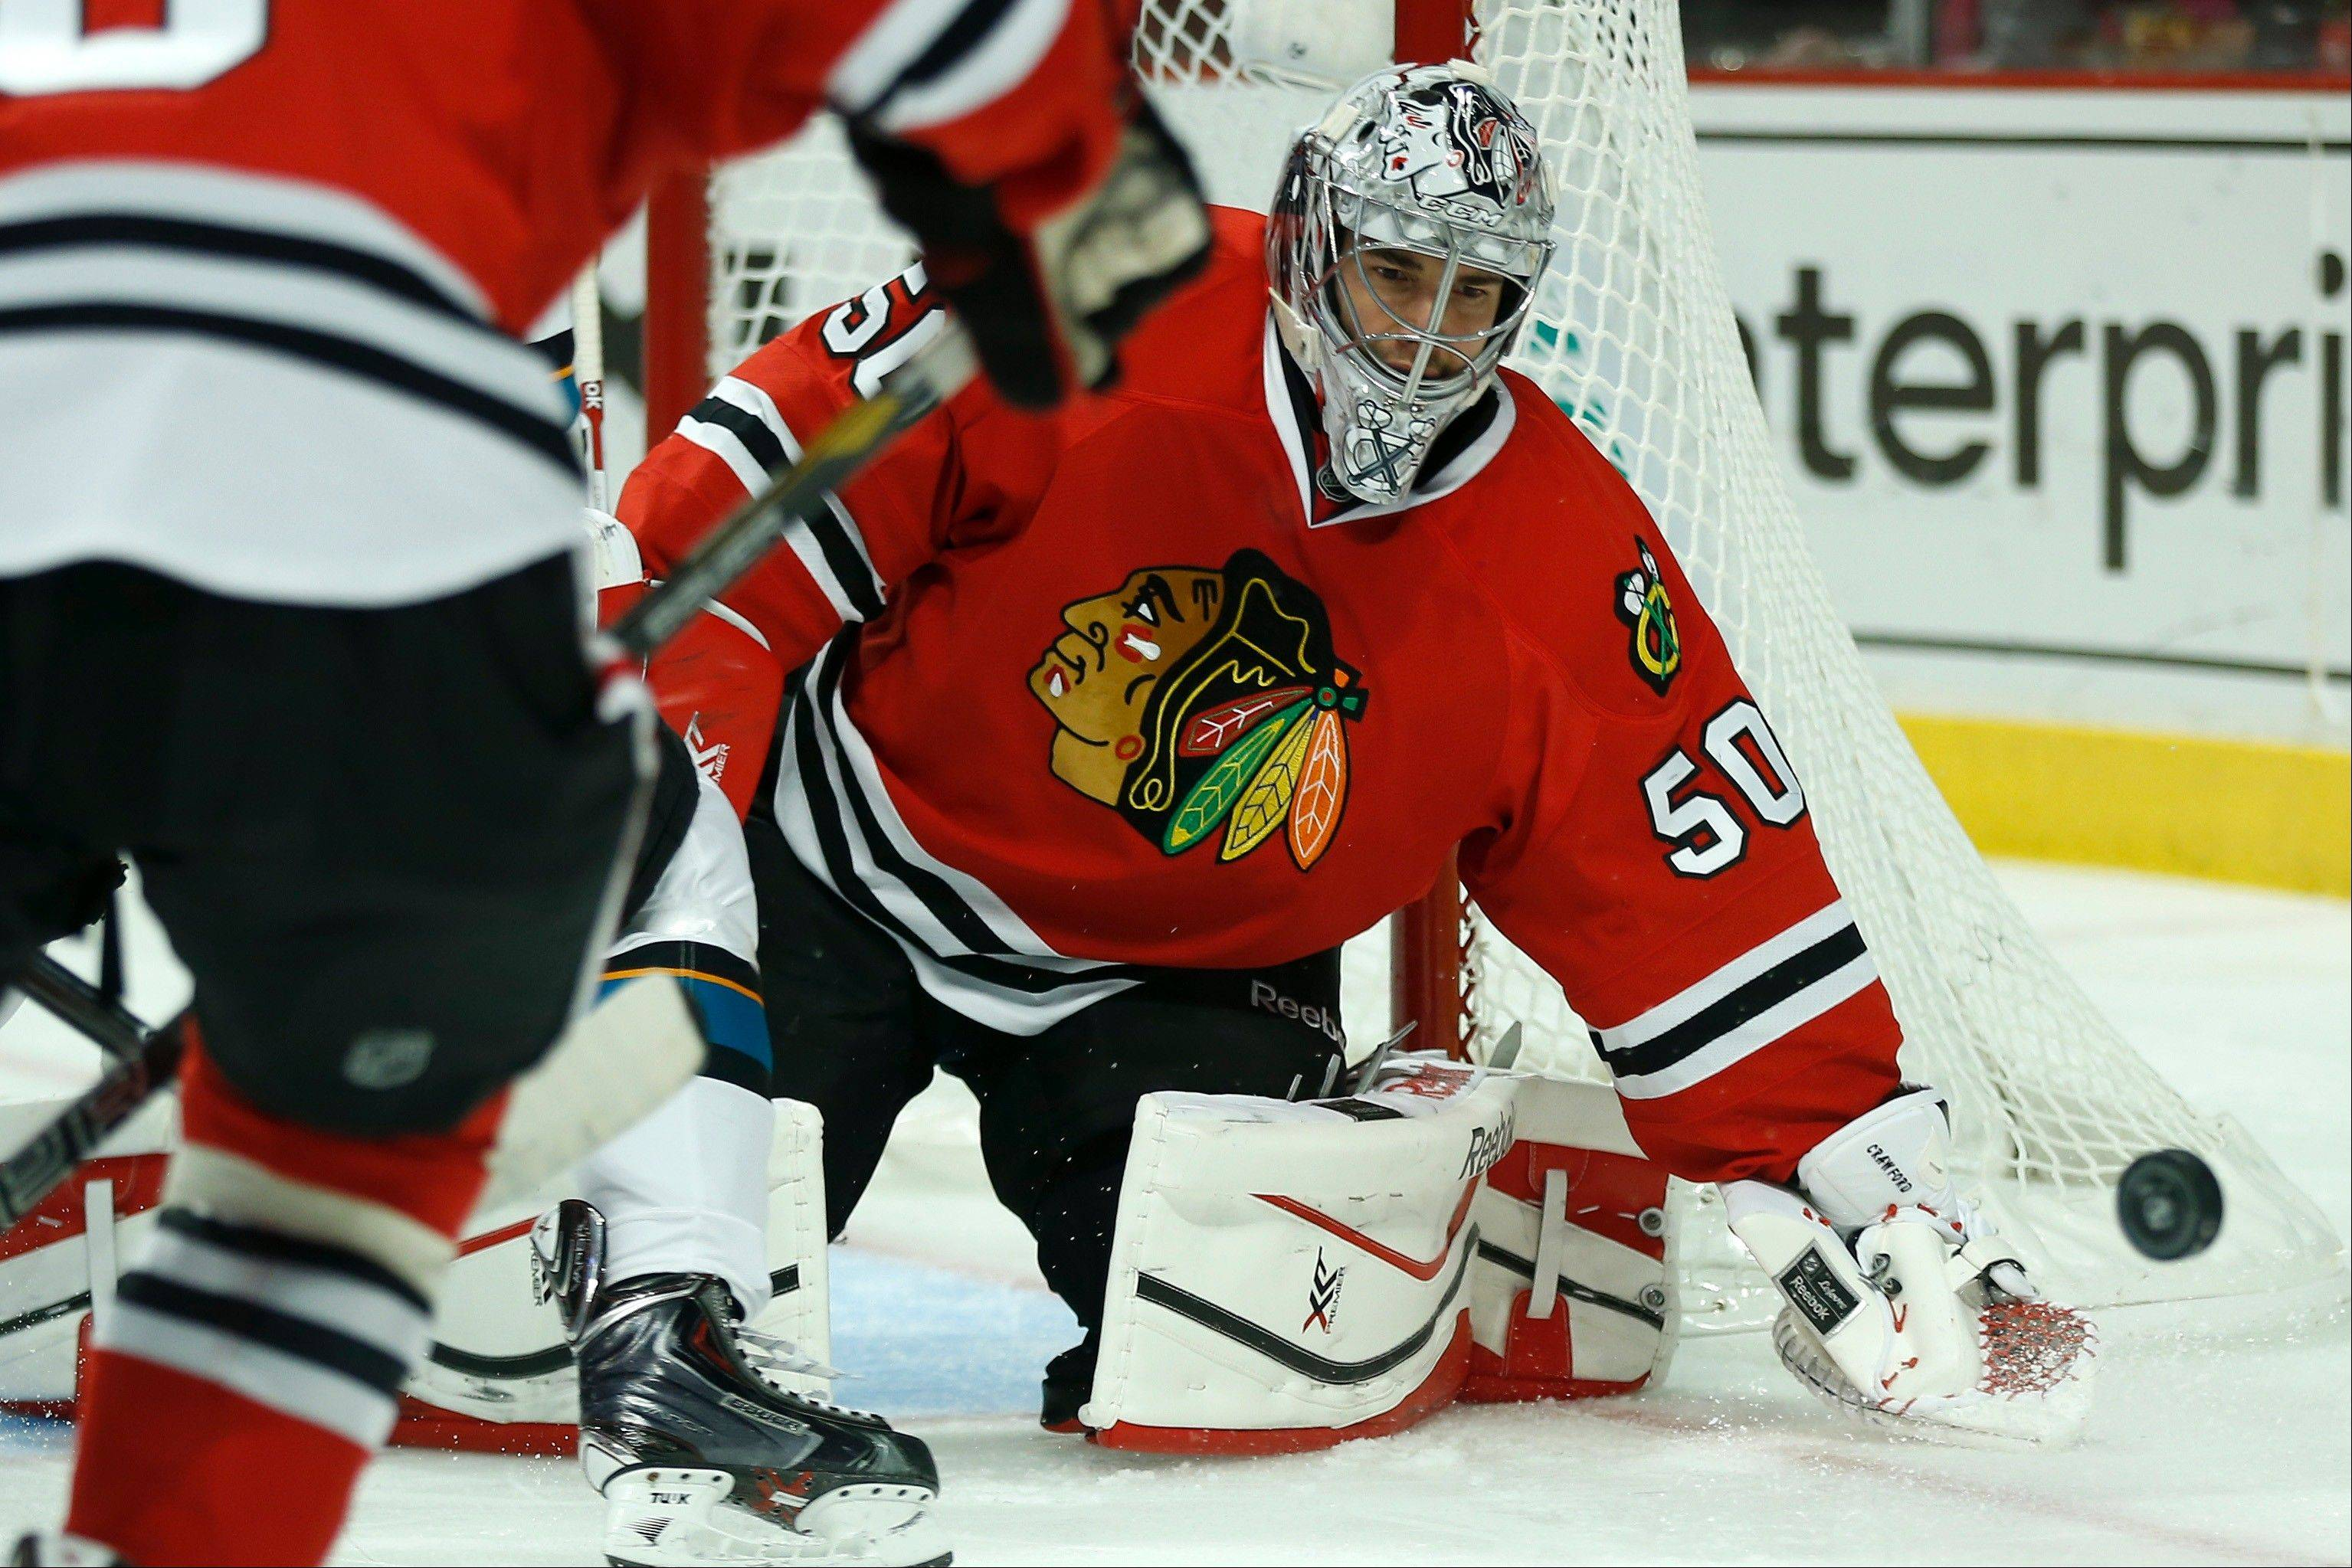 The Blackhawks say goalie Corey Crawford is making great progress and he may travel with the team this weekend but he won't play.